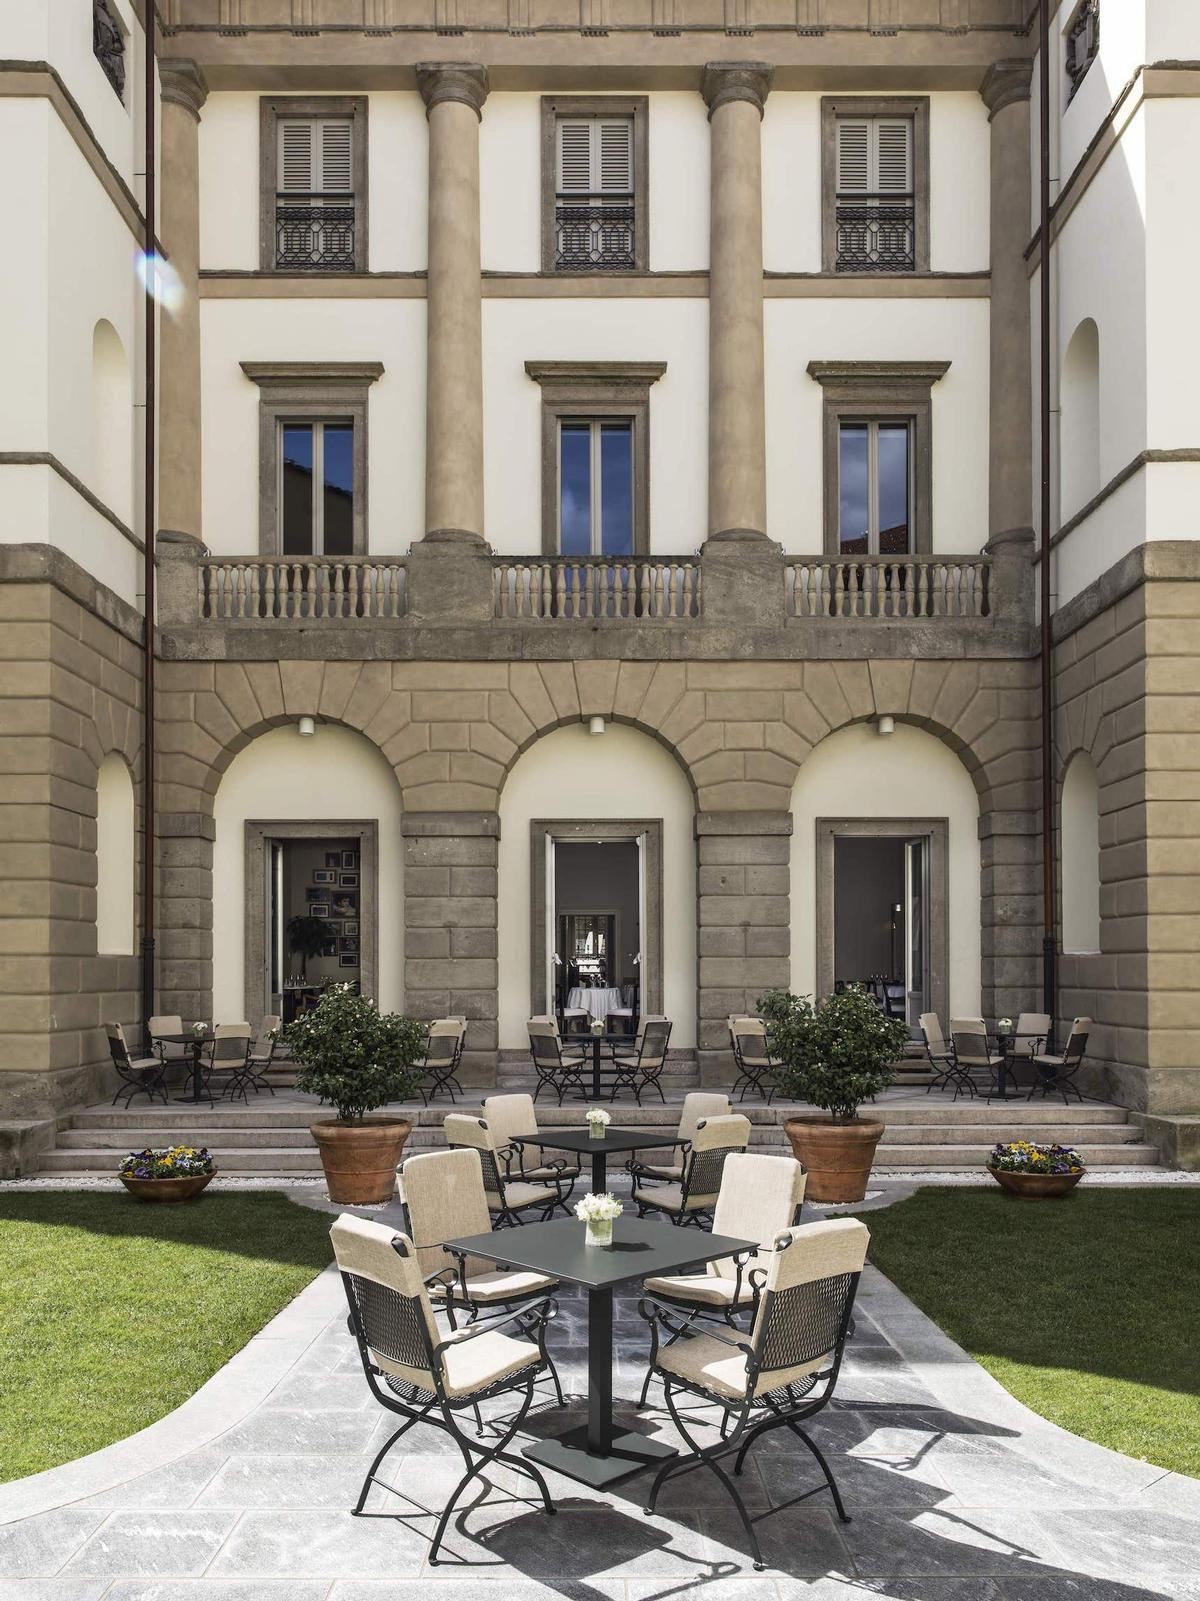 Palazzo Reina, which was commissioned by the noble Milanese Reina family and built in 1830 by architect Nicola Dordoni, has been carefully restored and converted by Ed Ng and Terence Ngan  / AB Concept